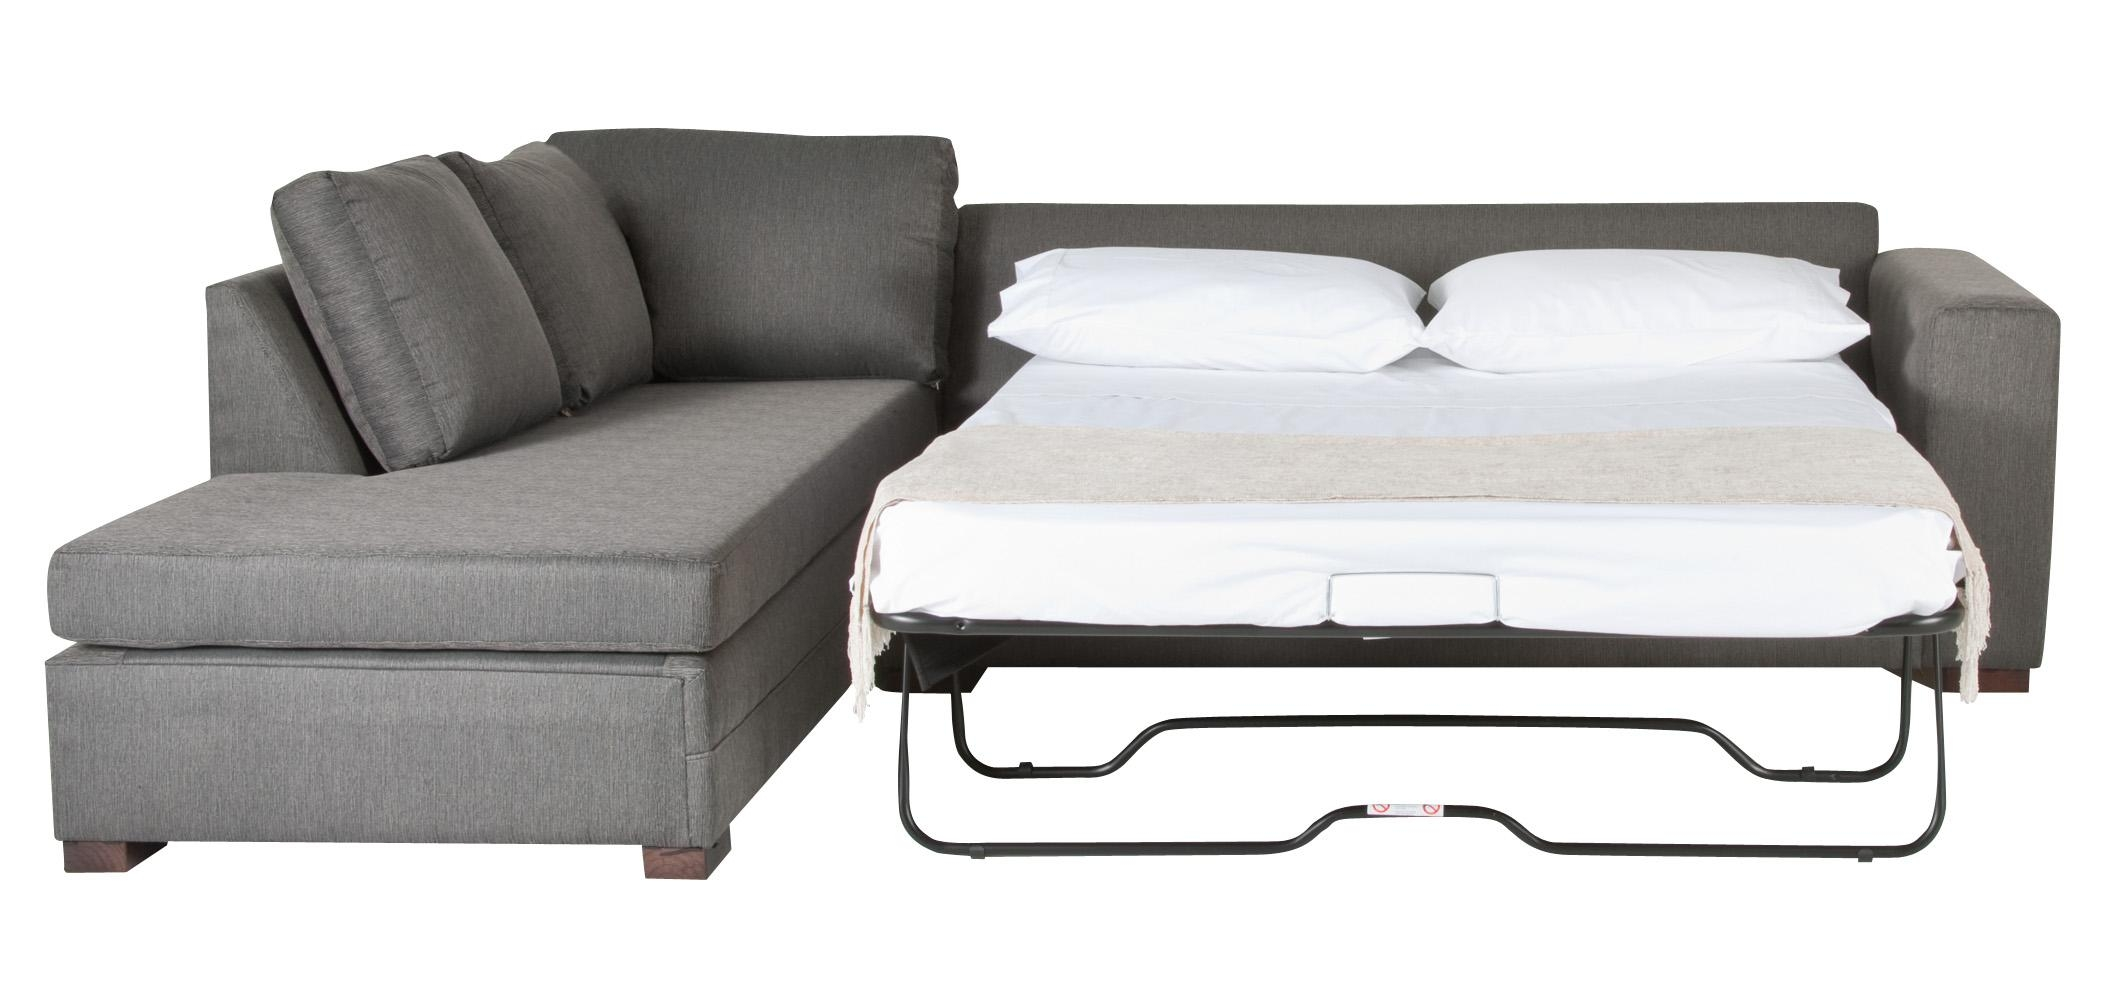 Sectional Sleeper Sofa Ikea – Interior Design In Ikea Sectional Sleeper Sofa (Image 9 of 20)